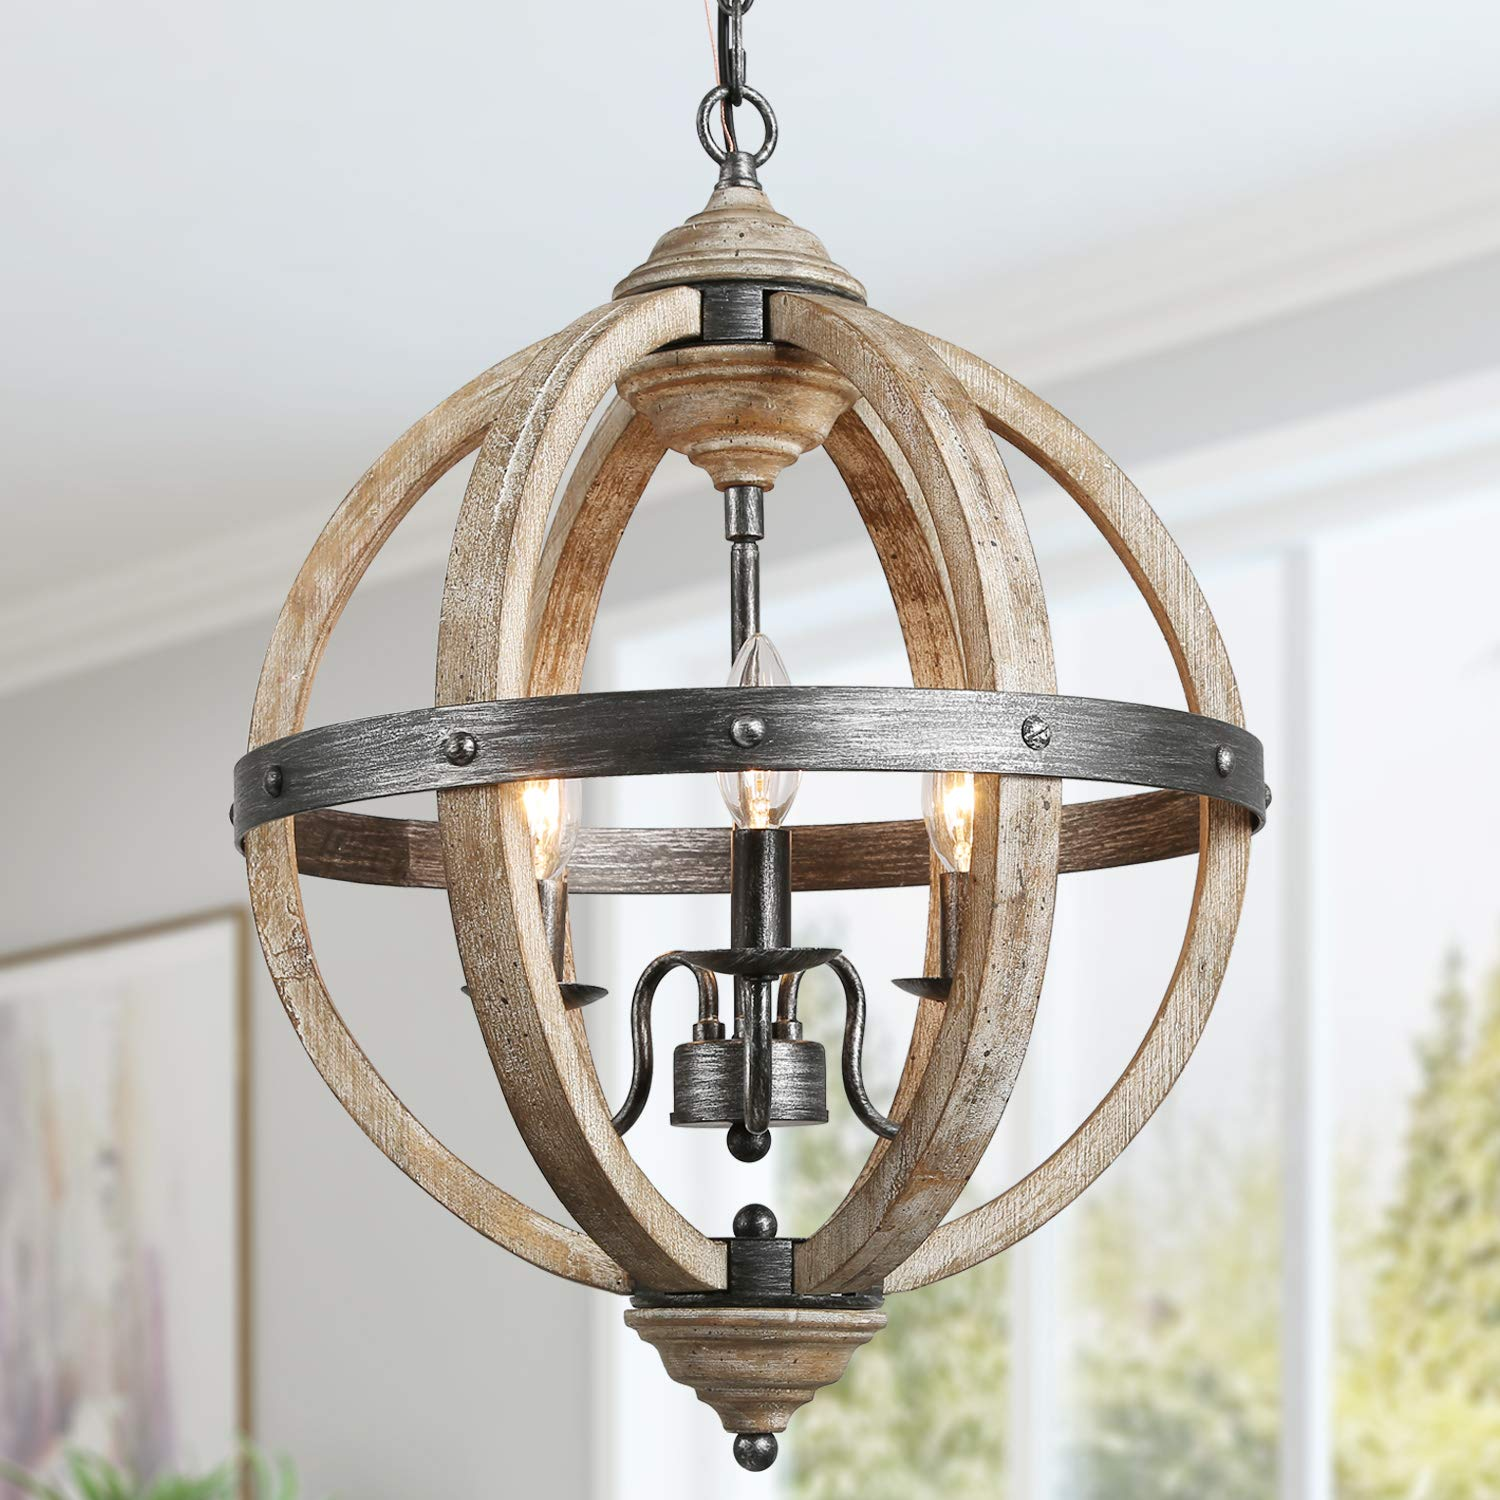 "KSANA Orb Chandelier, Farmhouse Wood Chandeliers for Dining Rooms in Rustic Wood and Hand-Painted Black Metal Finish, W15.7""xH21.5"""